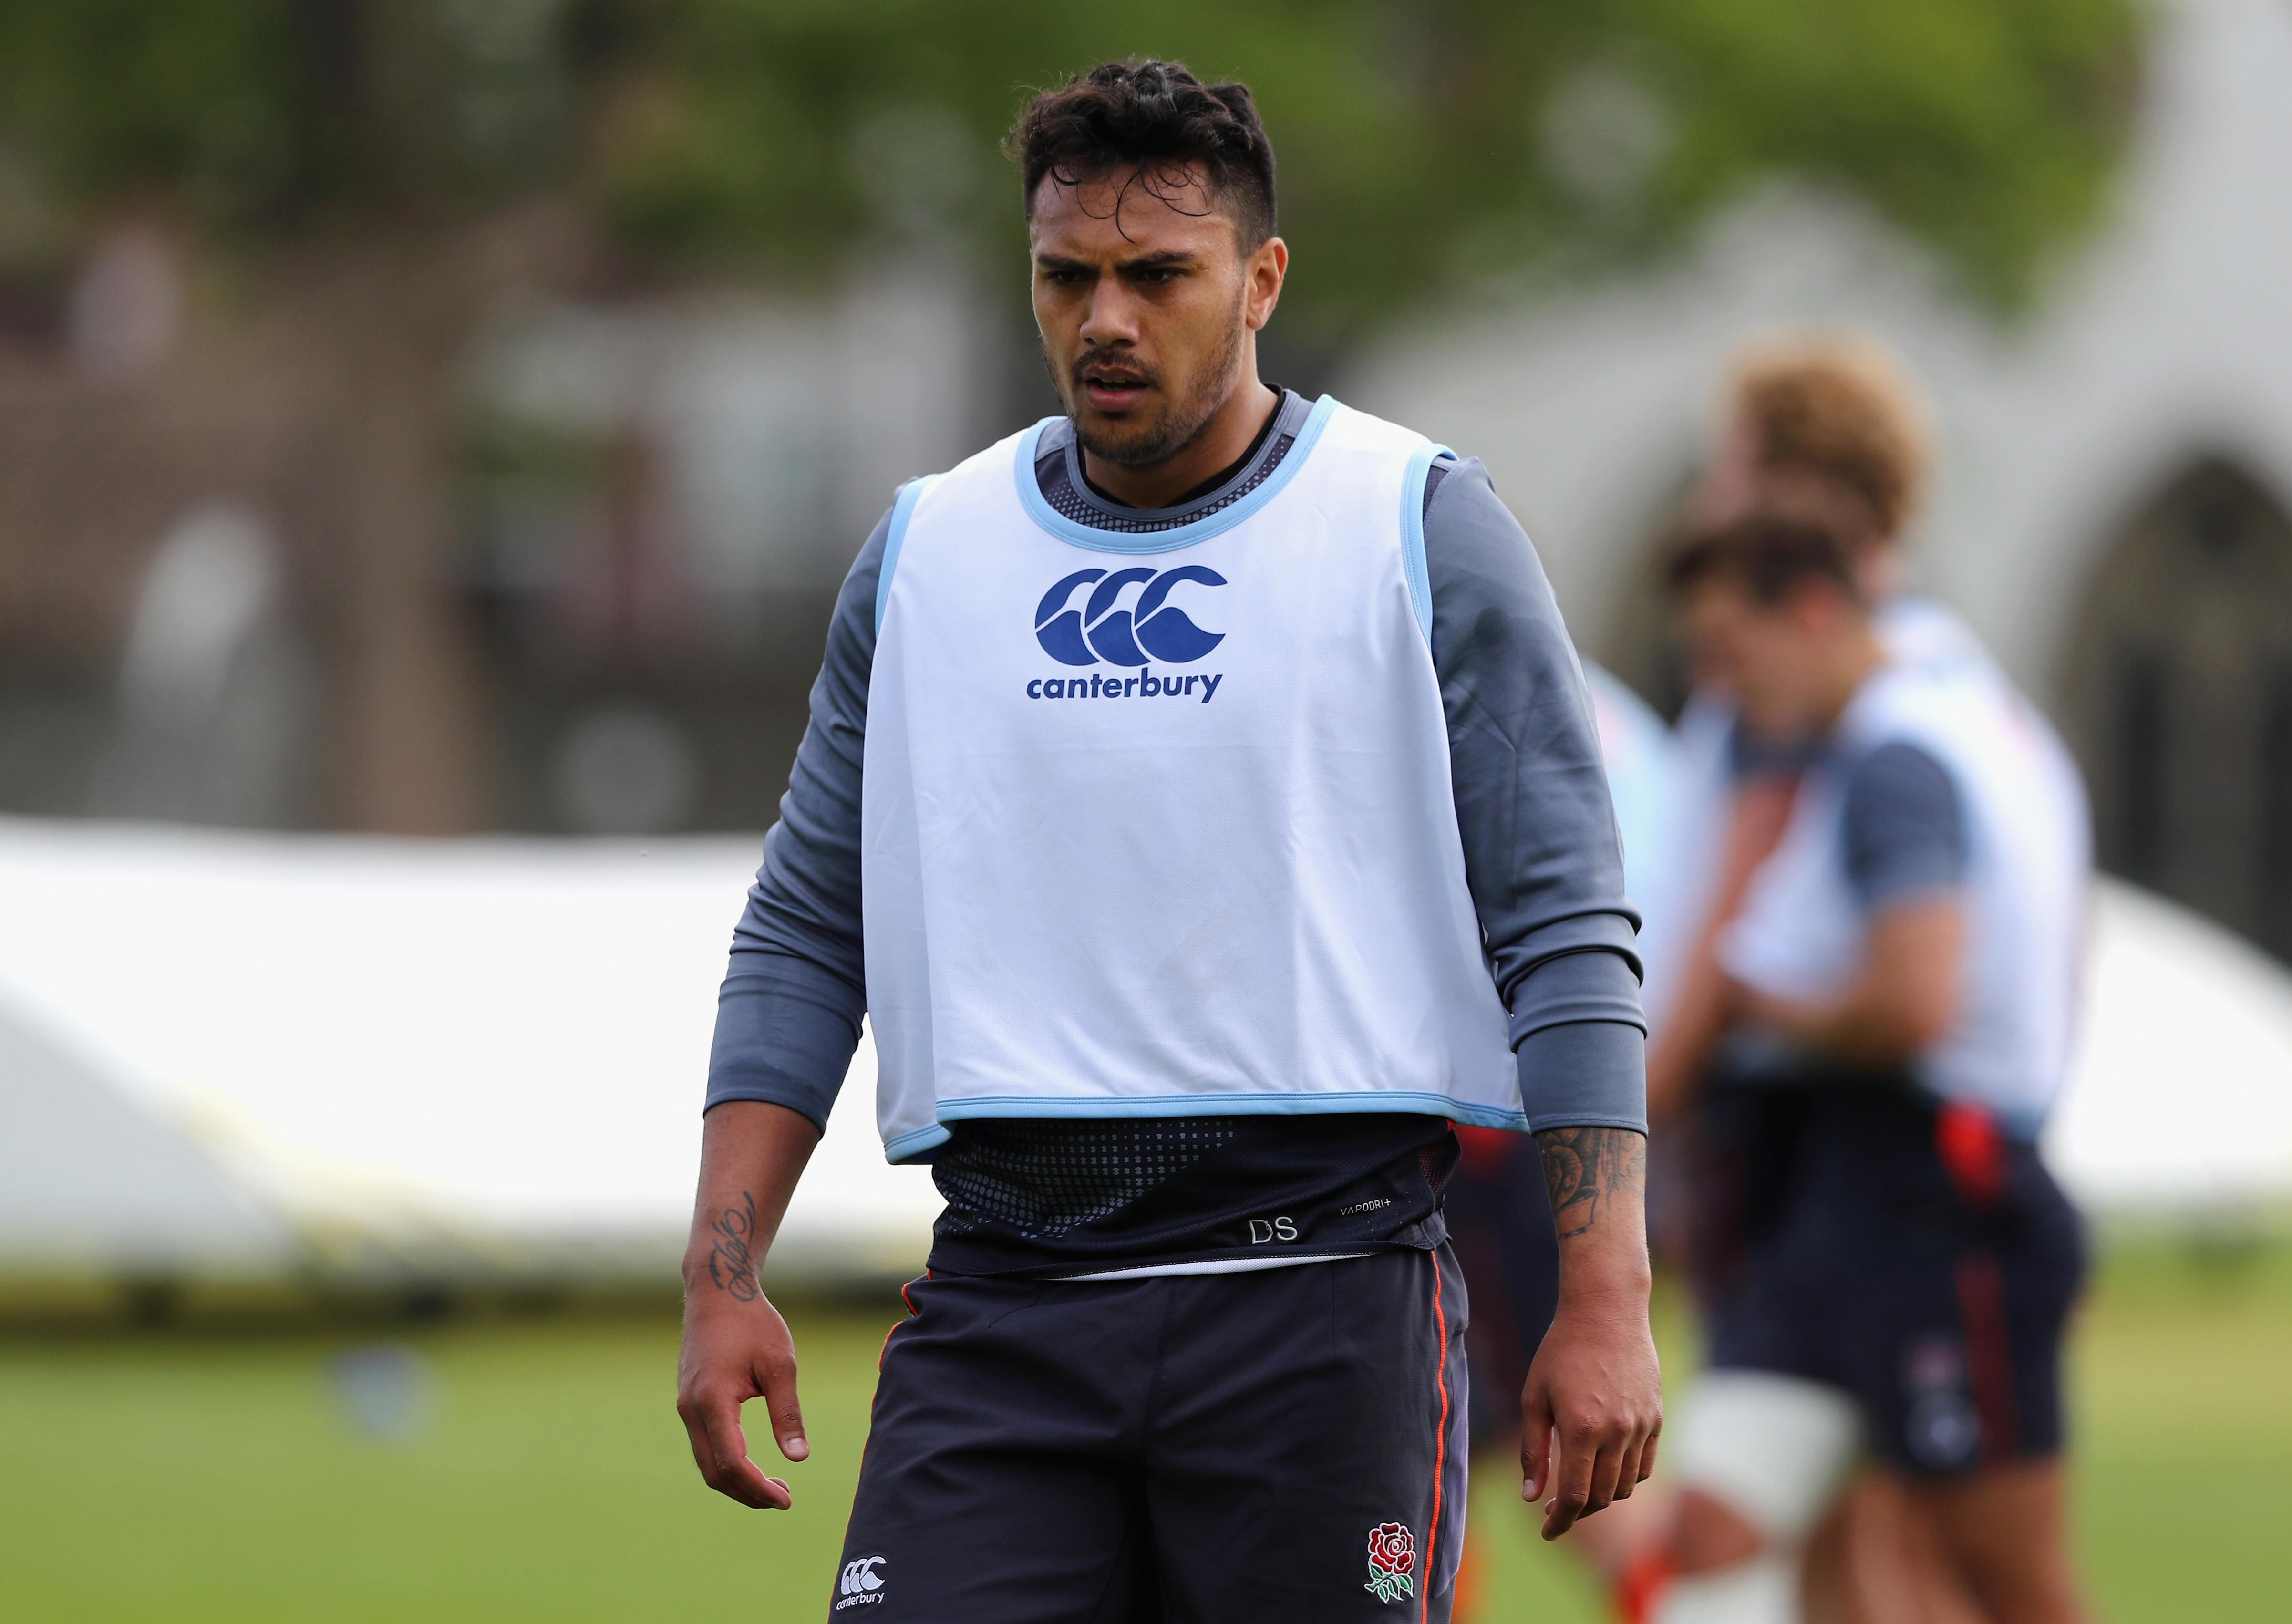 Denny Solomona's England career is in huge doubt after his ban